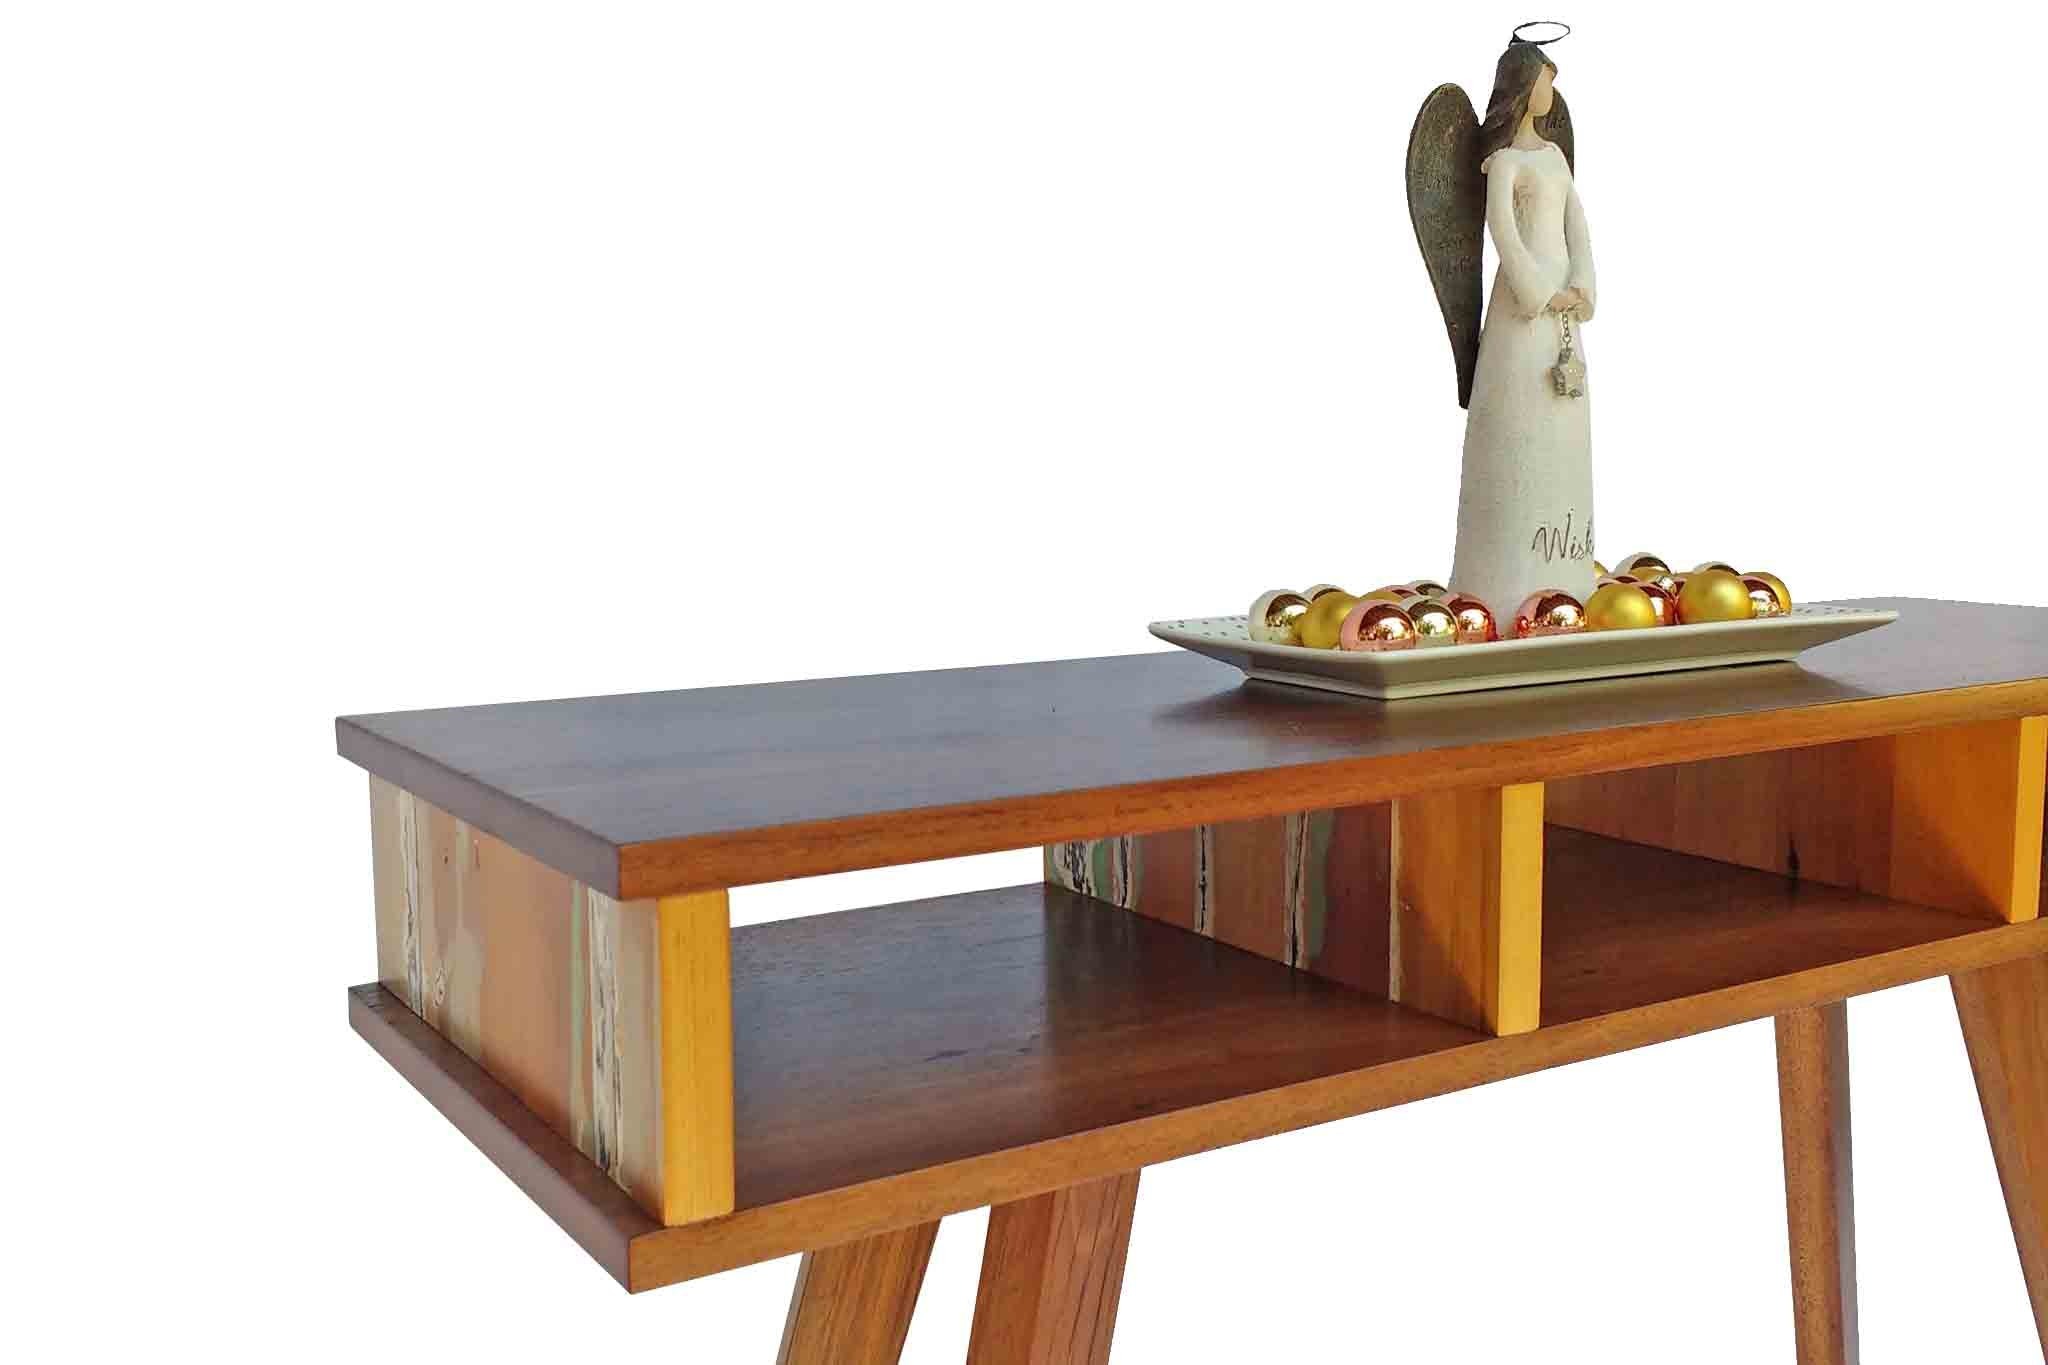 Reclaimed timber hall console table custom made from recycled Australian hardwoods by One Tree Studio